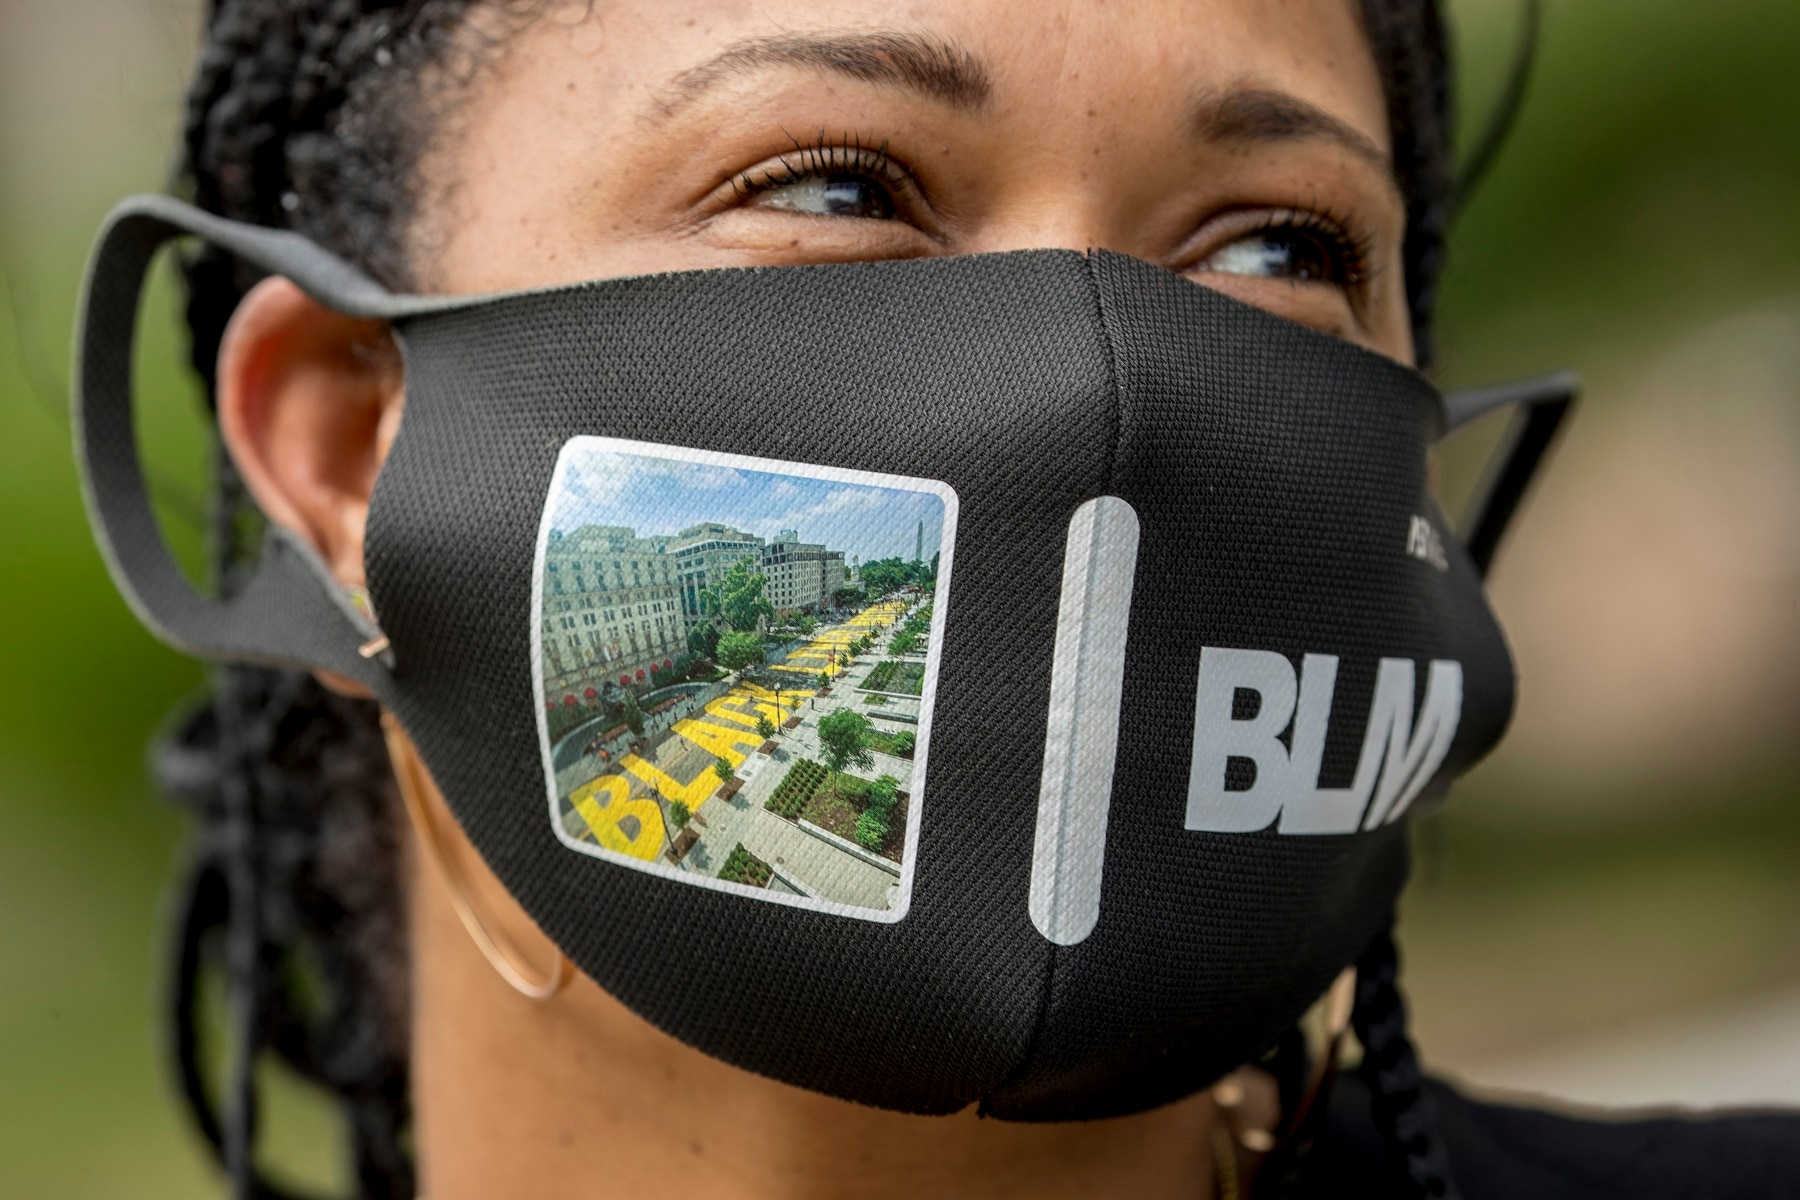 Shawna Jacobs wears a mask with a photograph of 16th Street Northwest renamed Black Lives Matter Plaza in Washington.